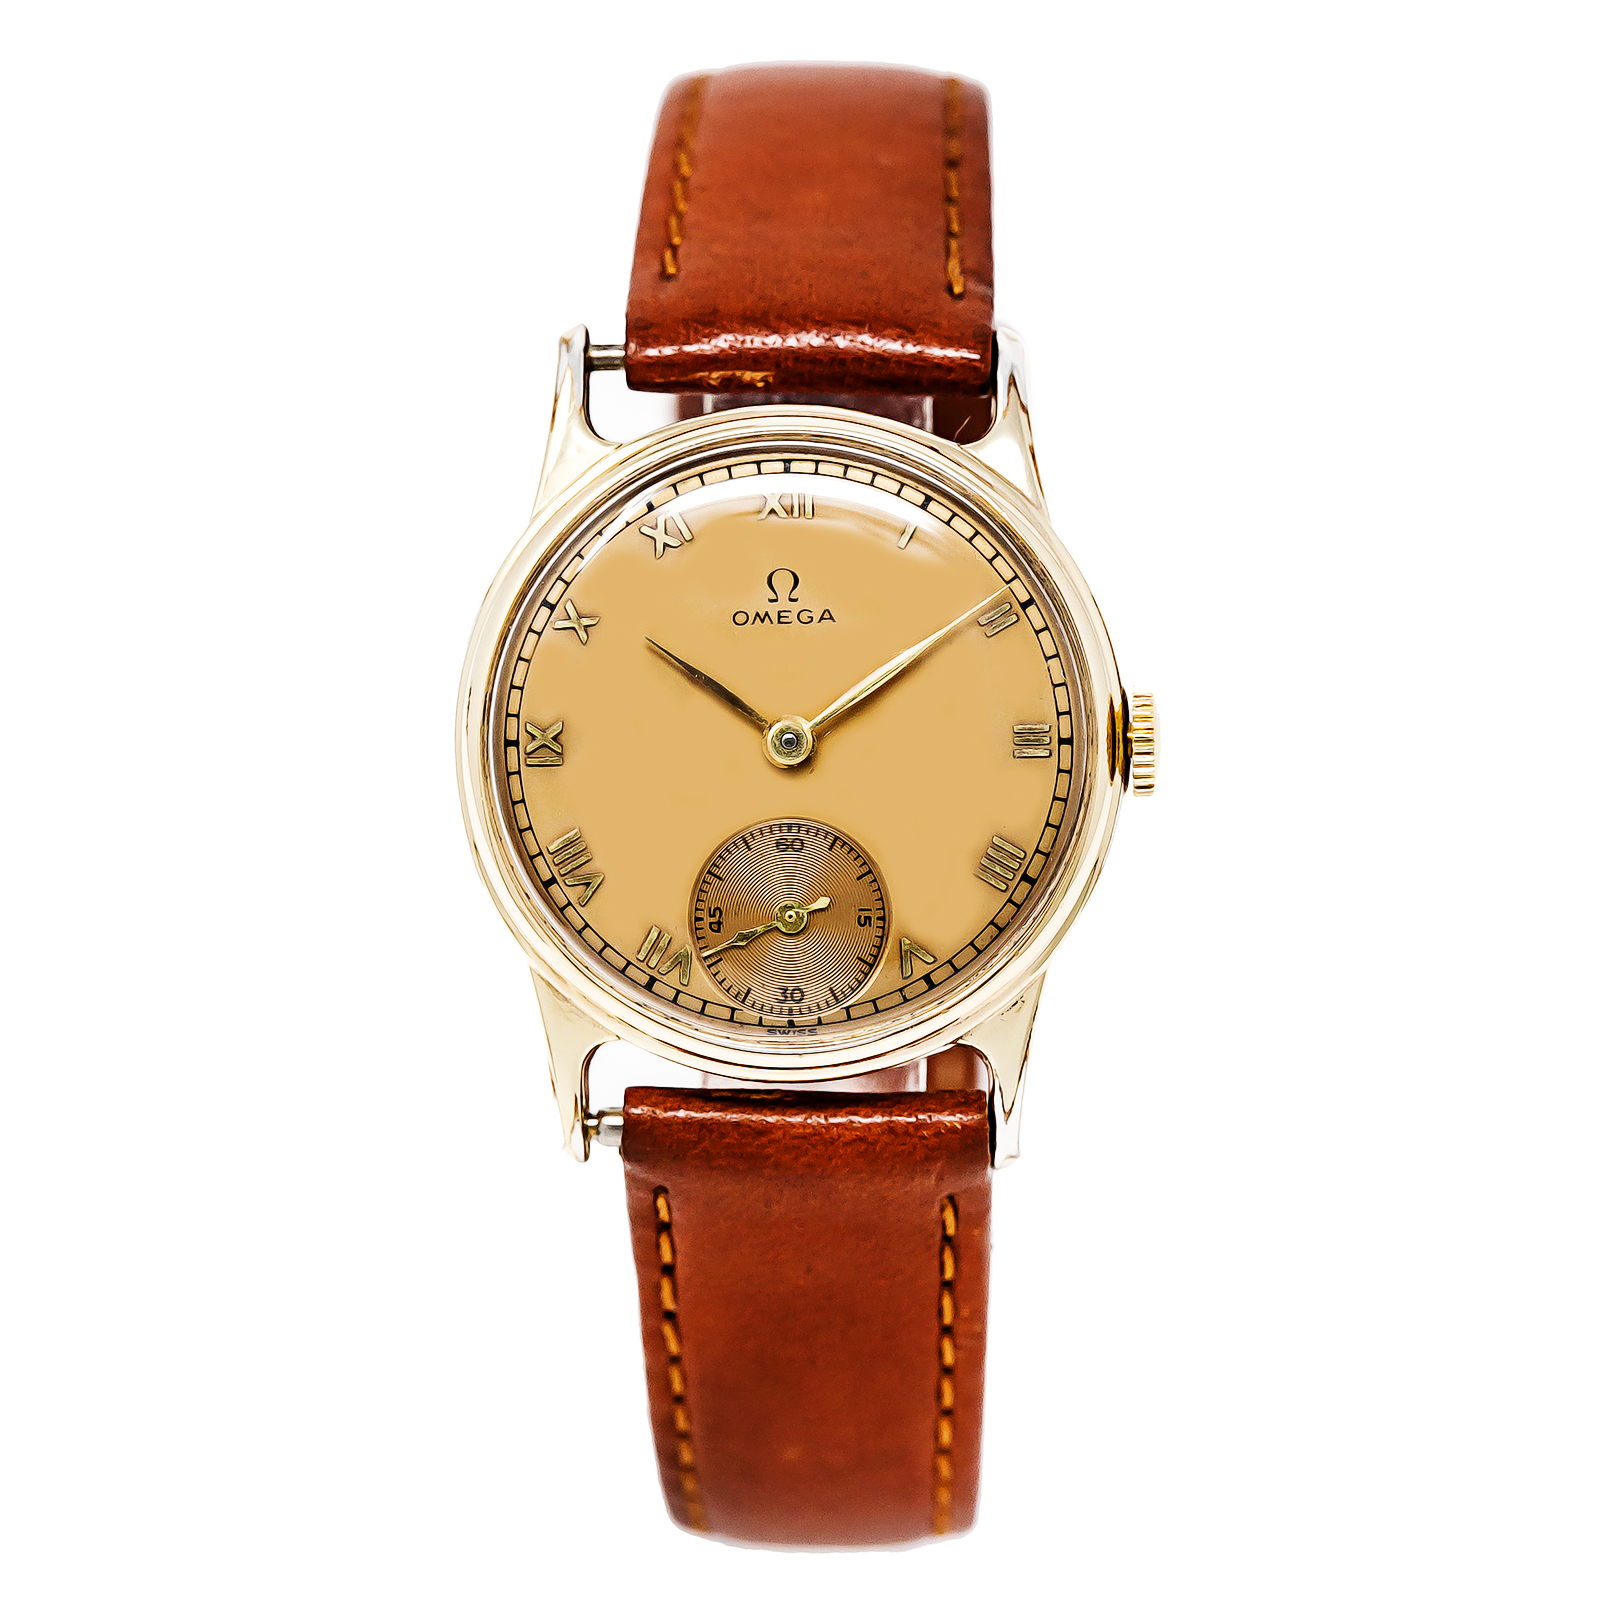 jewel applied inventory for filled and numerals a vintage silver watch features second men arabic store s sale around dial this yellow watches with time caliber hamilton gold movement